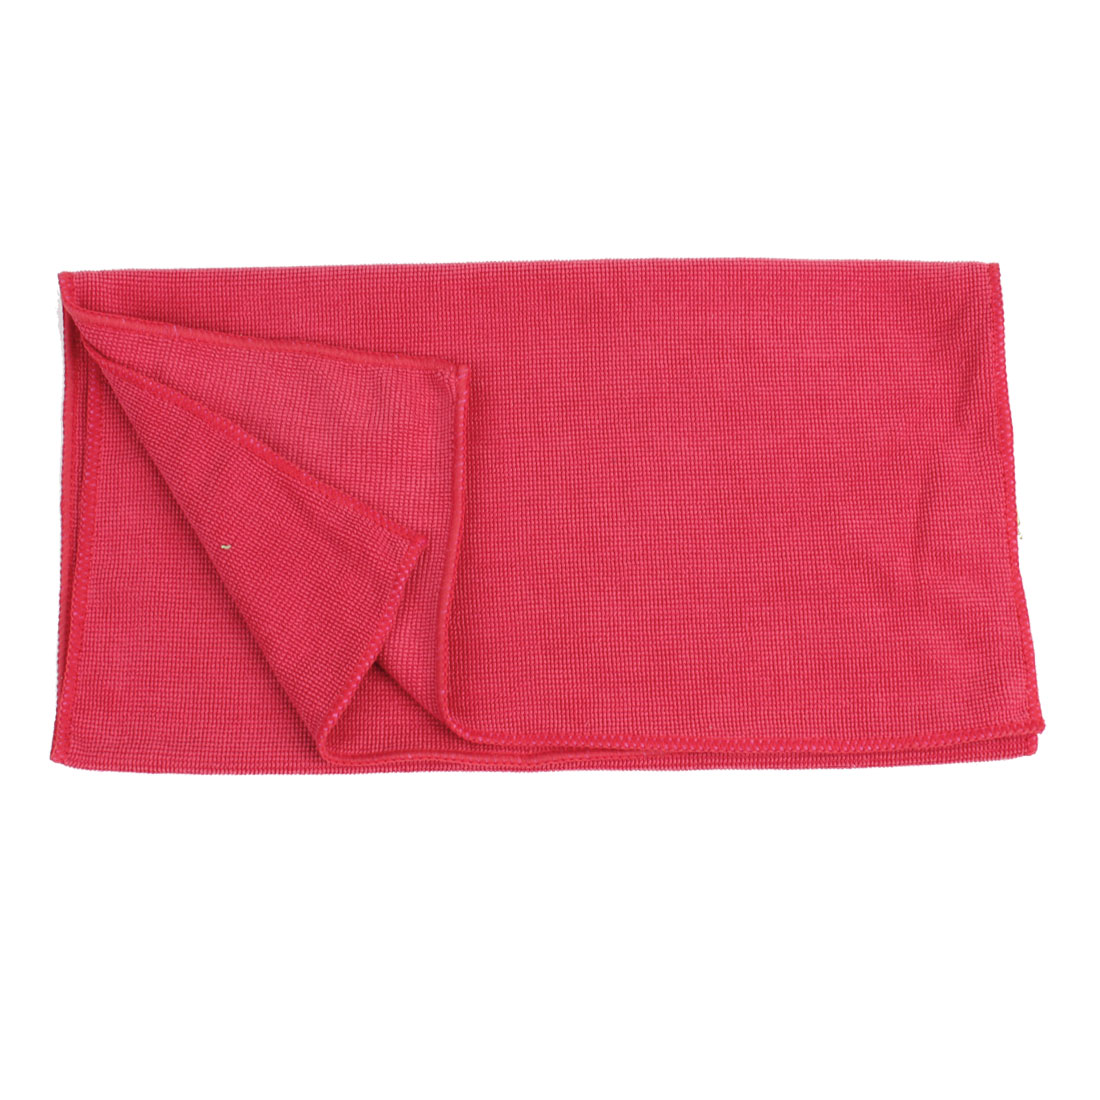 Red Rectangle Soft Microfiber Cleaning Towel Tool 73cm x 34cm for Car Hubcap